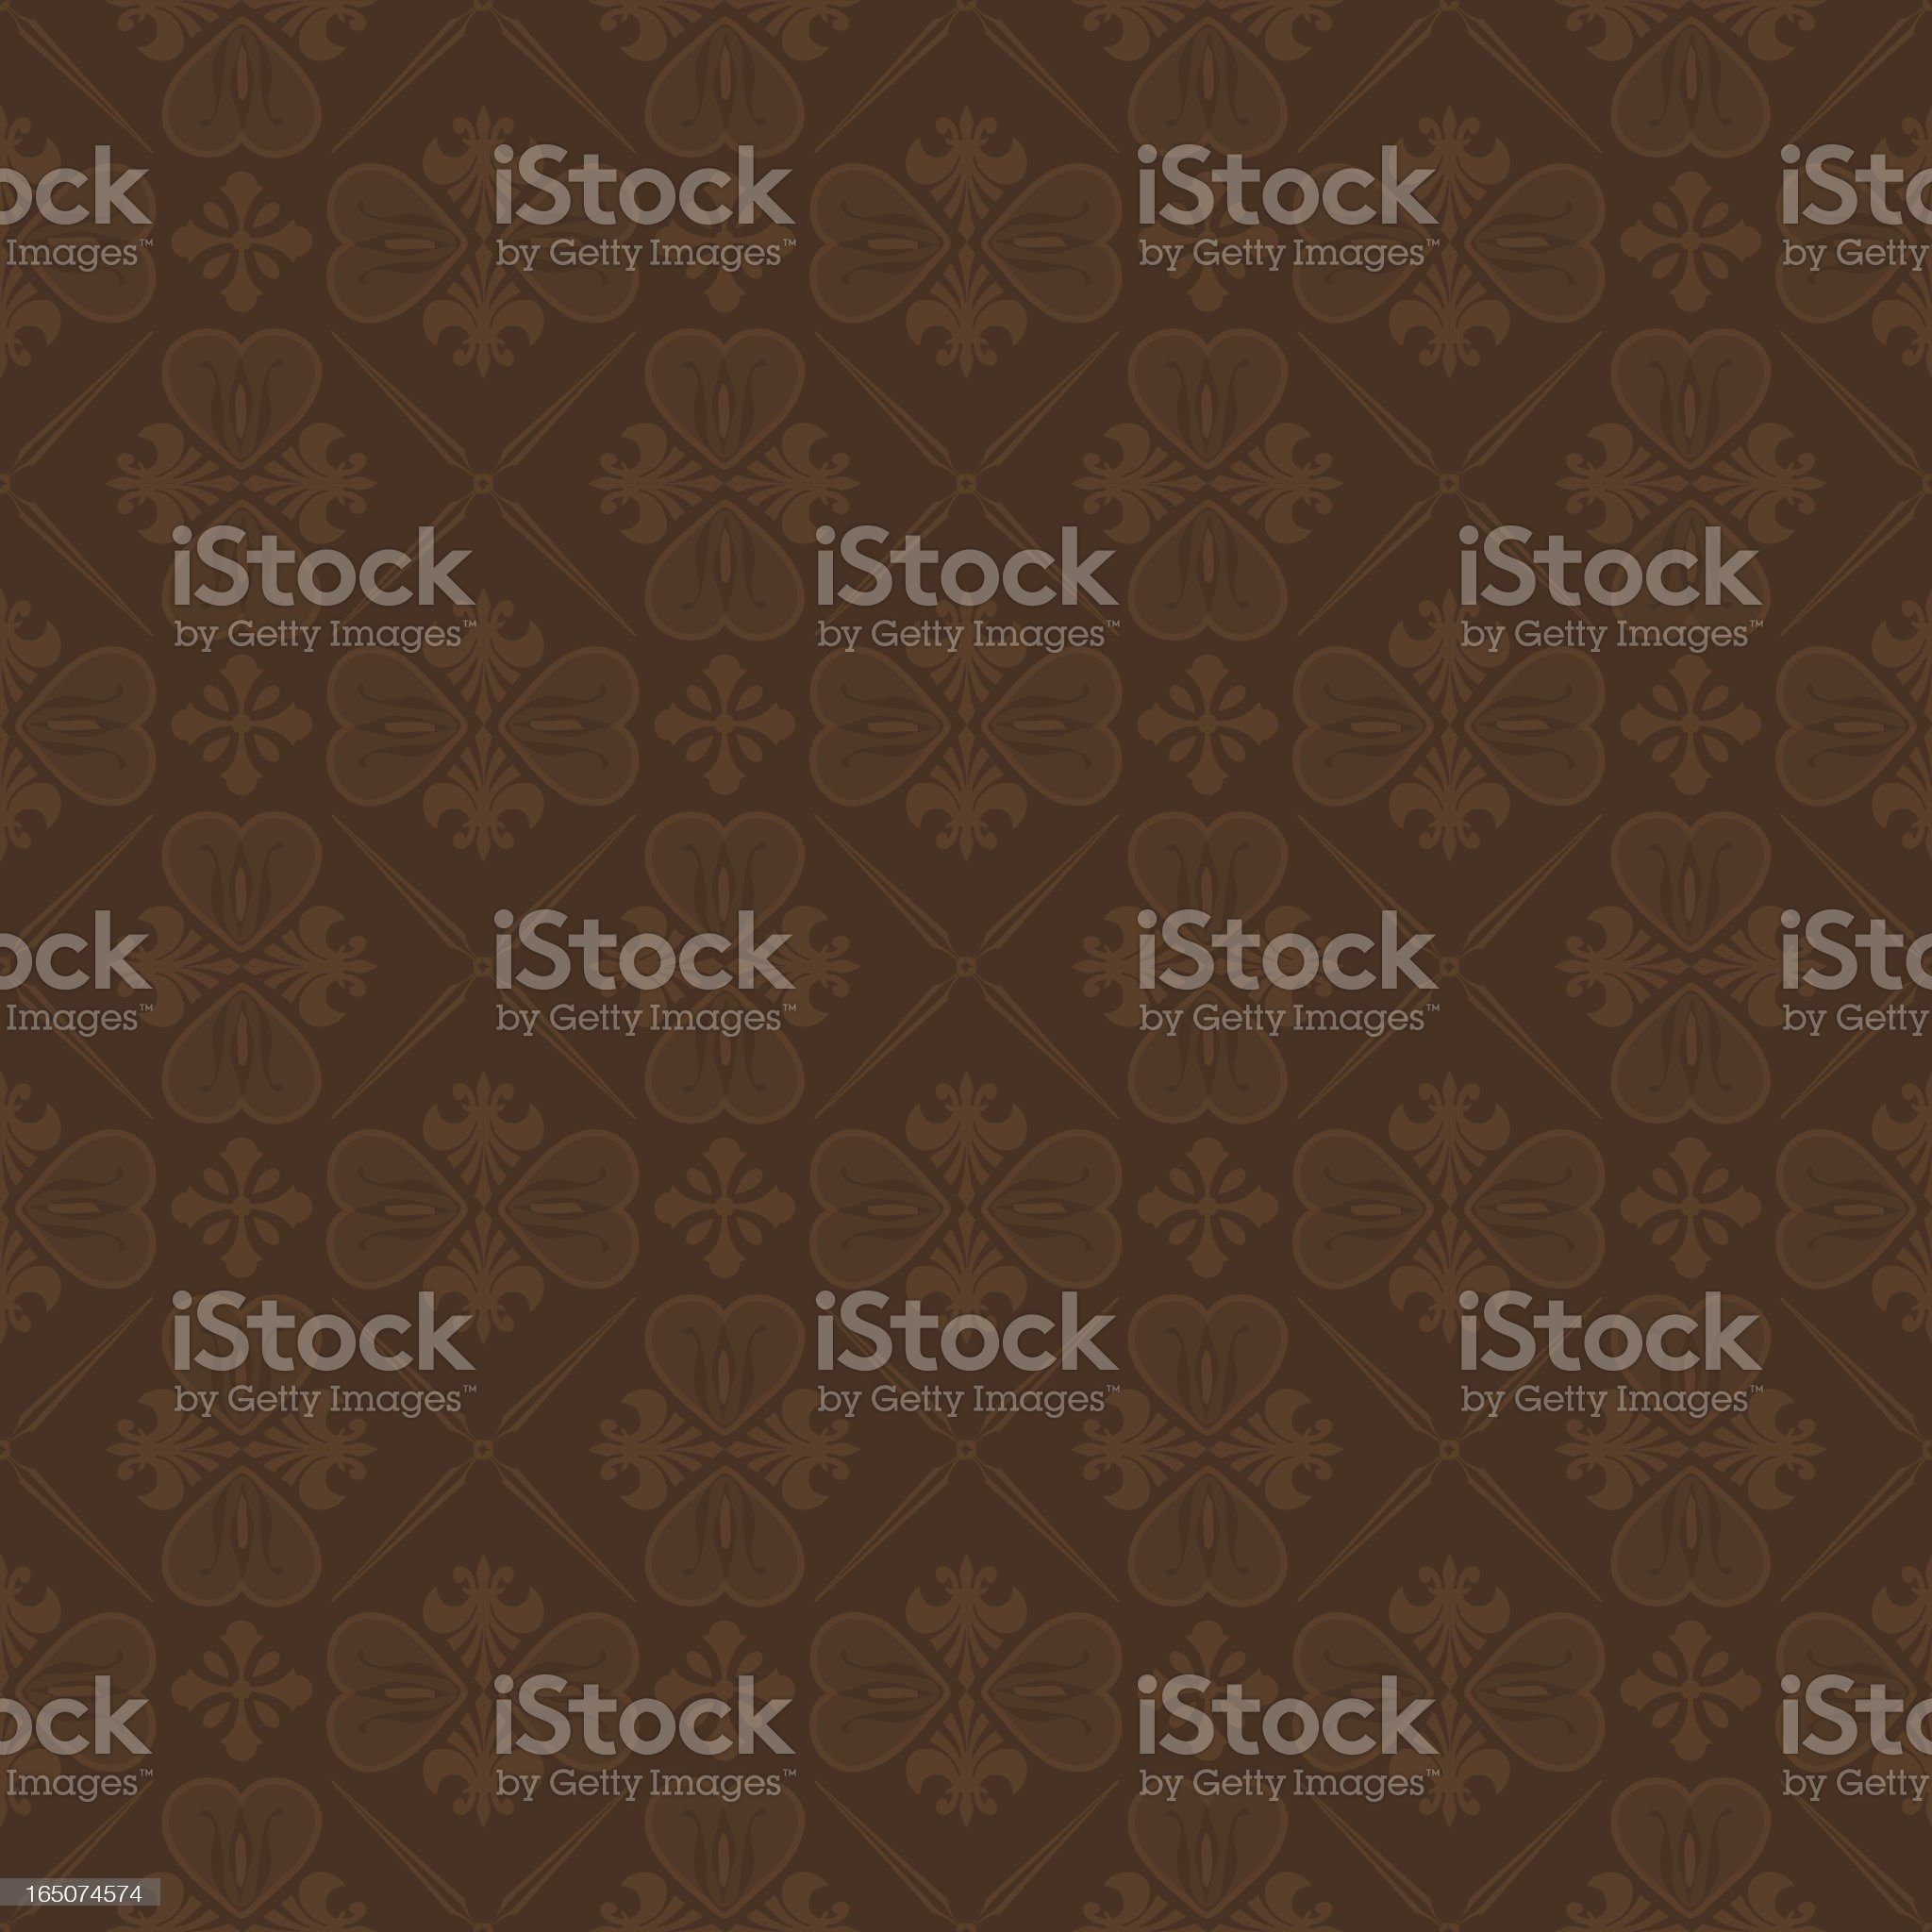 Background - Cocoa Wallpaper (Seamless) royalty-free stock vector art